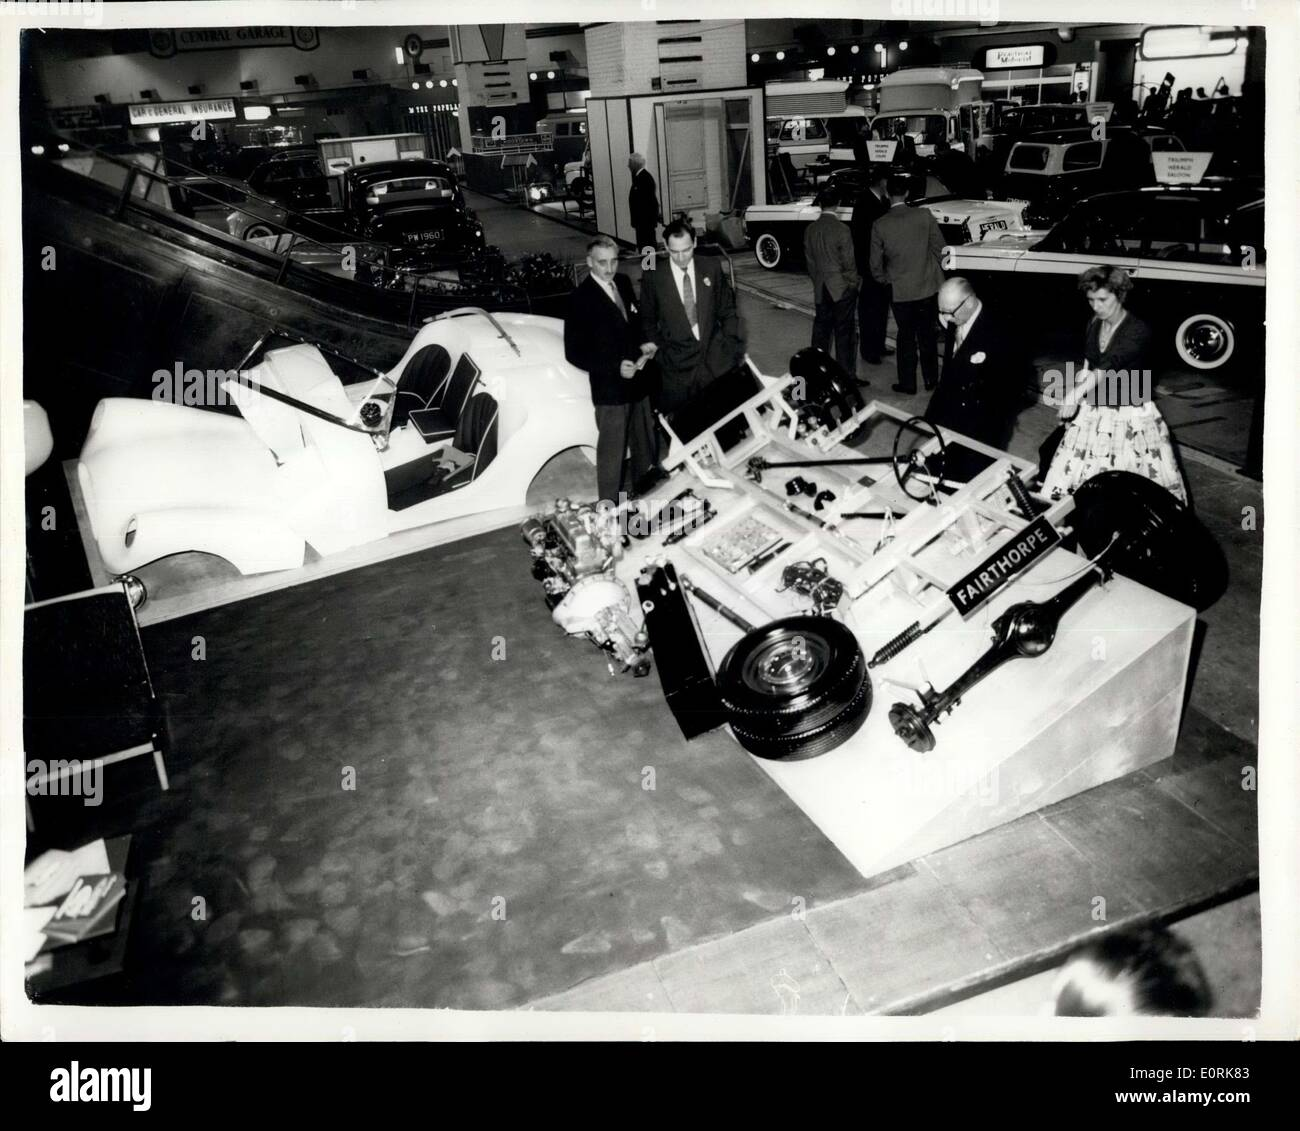 Oct 20 1959 motor show preview at earls court do it yourself do it yourself kit photo shows view of the fairhorpe electron minor do it yourself car kit which in priced at 46 0 solutioingenieria Image collections